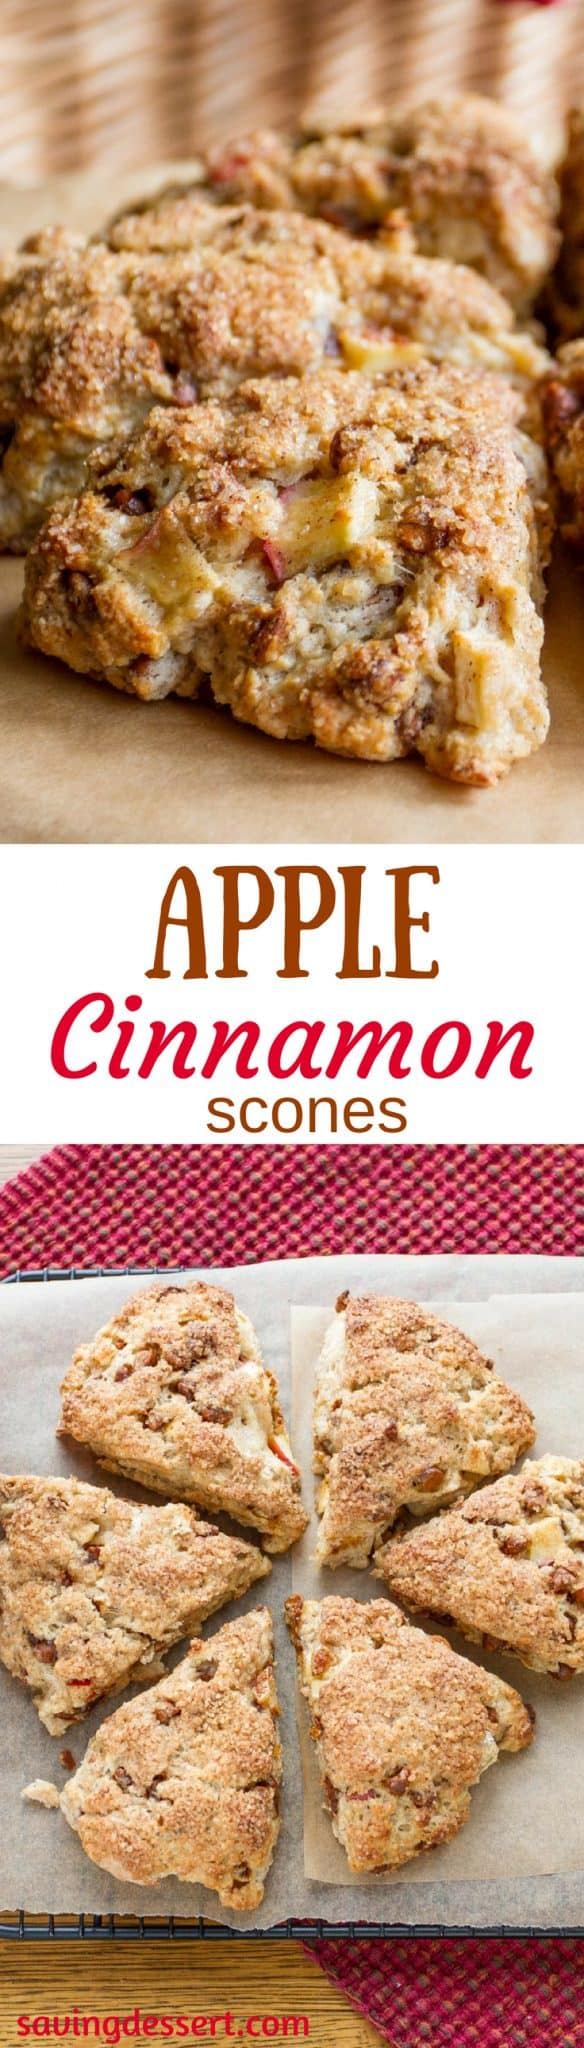 Apple Cinnamon Scones ~ light and fluffy with a crispy sweet crust, large chunks of apple and delicious cinnamon chips!  savingdessert.com #savingroomfordessert #apple #applescones #scones #breakfast